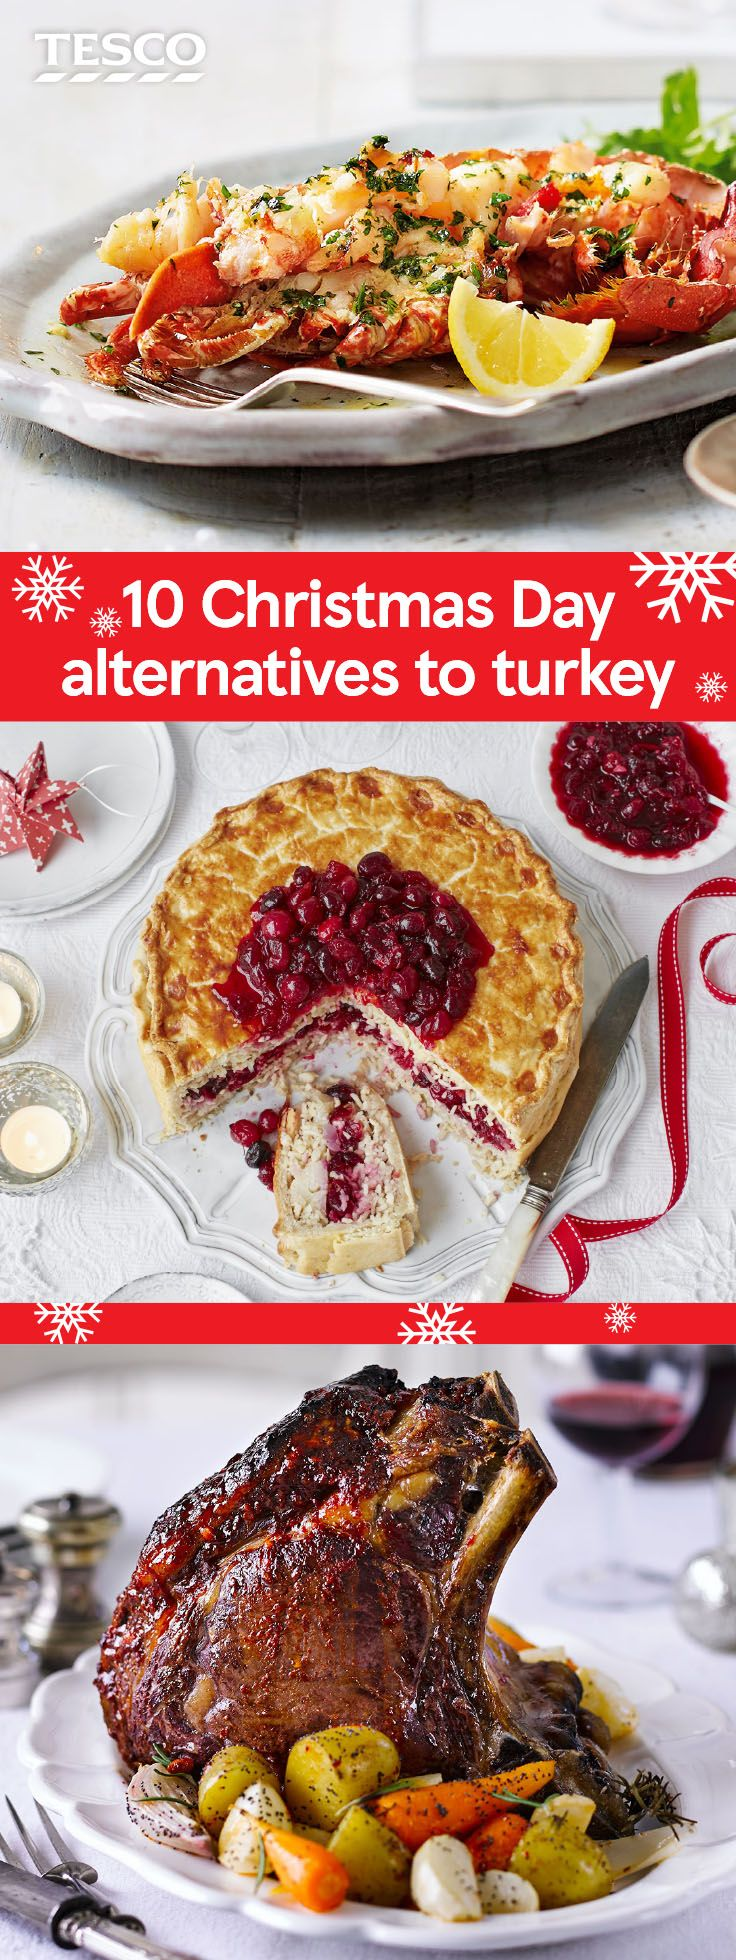 Looking for an alternative Christmas dinner idea? If turkey isn't for you, try one of our top alternative recipes, from stunning salmon and roast beef to vegetarian nut roasts and vegan bakes. | Tesco